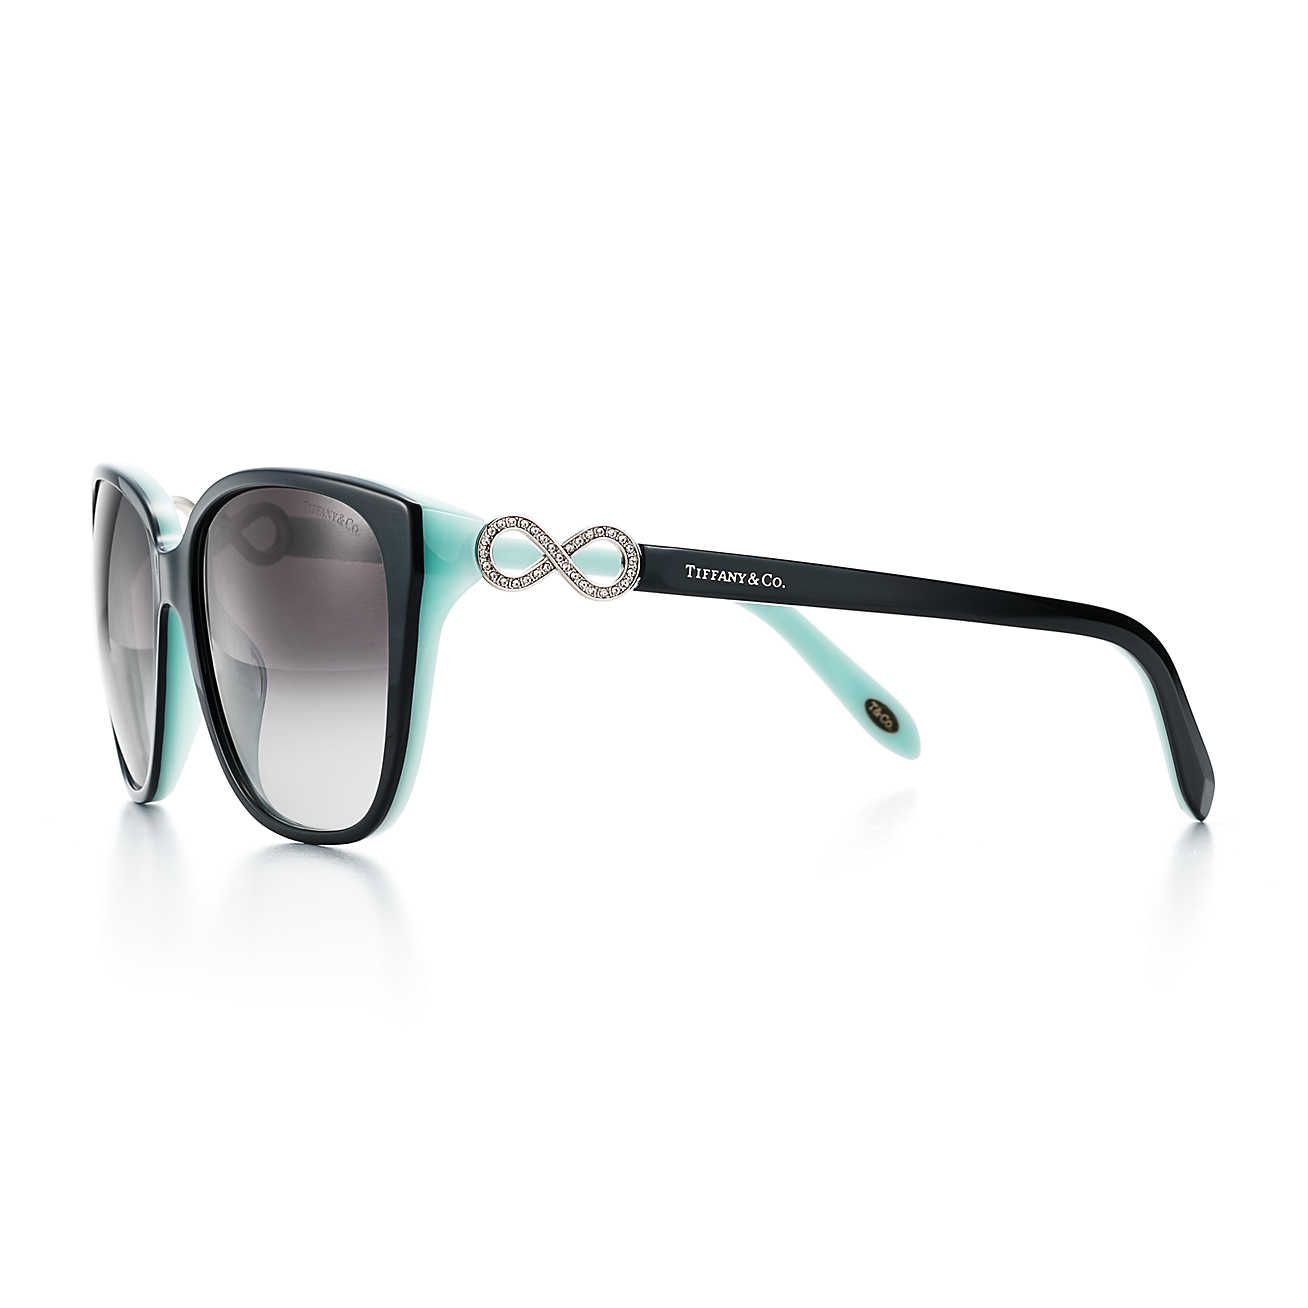 8fc07fd54747 Tiffany Infinity Square Sunglasses Available from James Doyle Opticians  Wilmslow